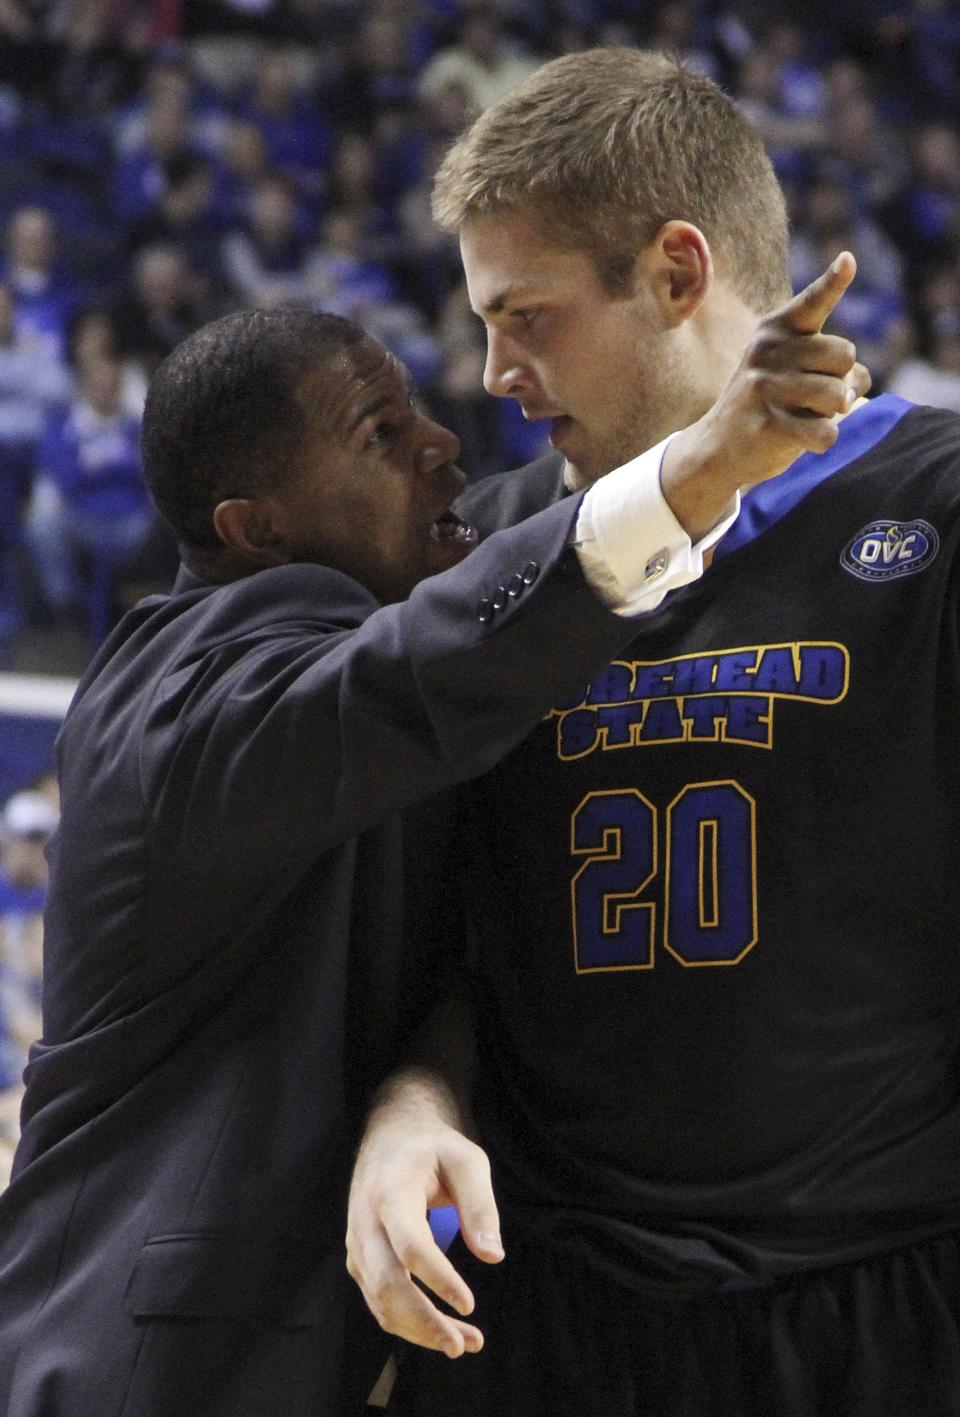 Morehead State coach Sean Woods, left, gives pointers to Chad Posthumus during the first half of an NCAA college basketball game against Kentucky at Rupp Arena in Lexington, Ky., Wednesday, Nov. 21, 2012. (AP Photo/James Crisp)